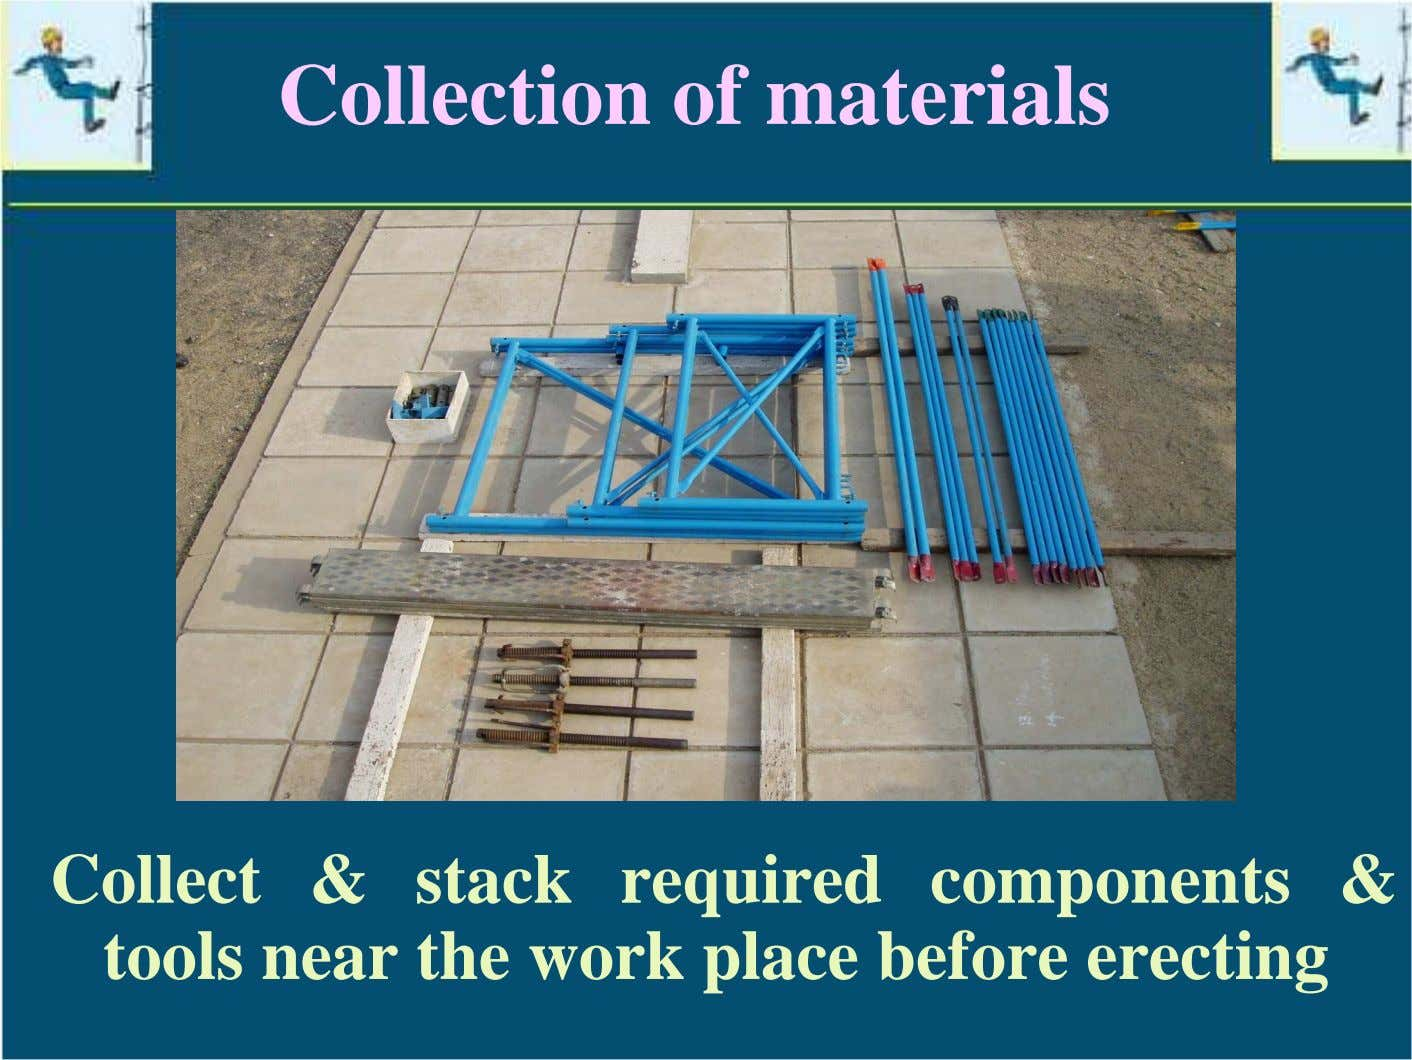 Collection of materials Collect & stack required components & tools near the work place before